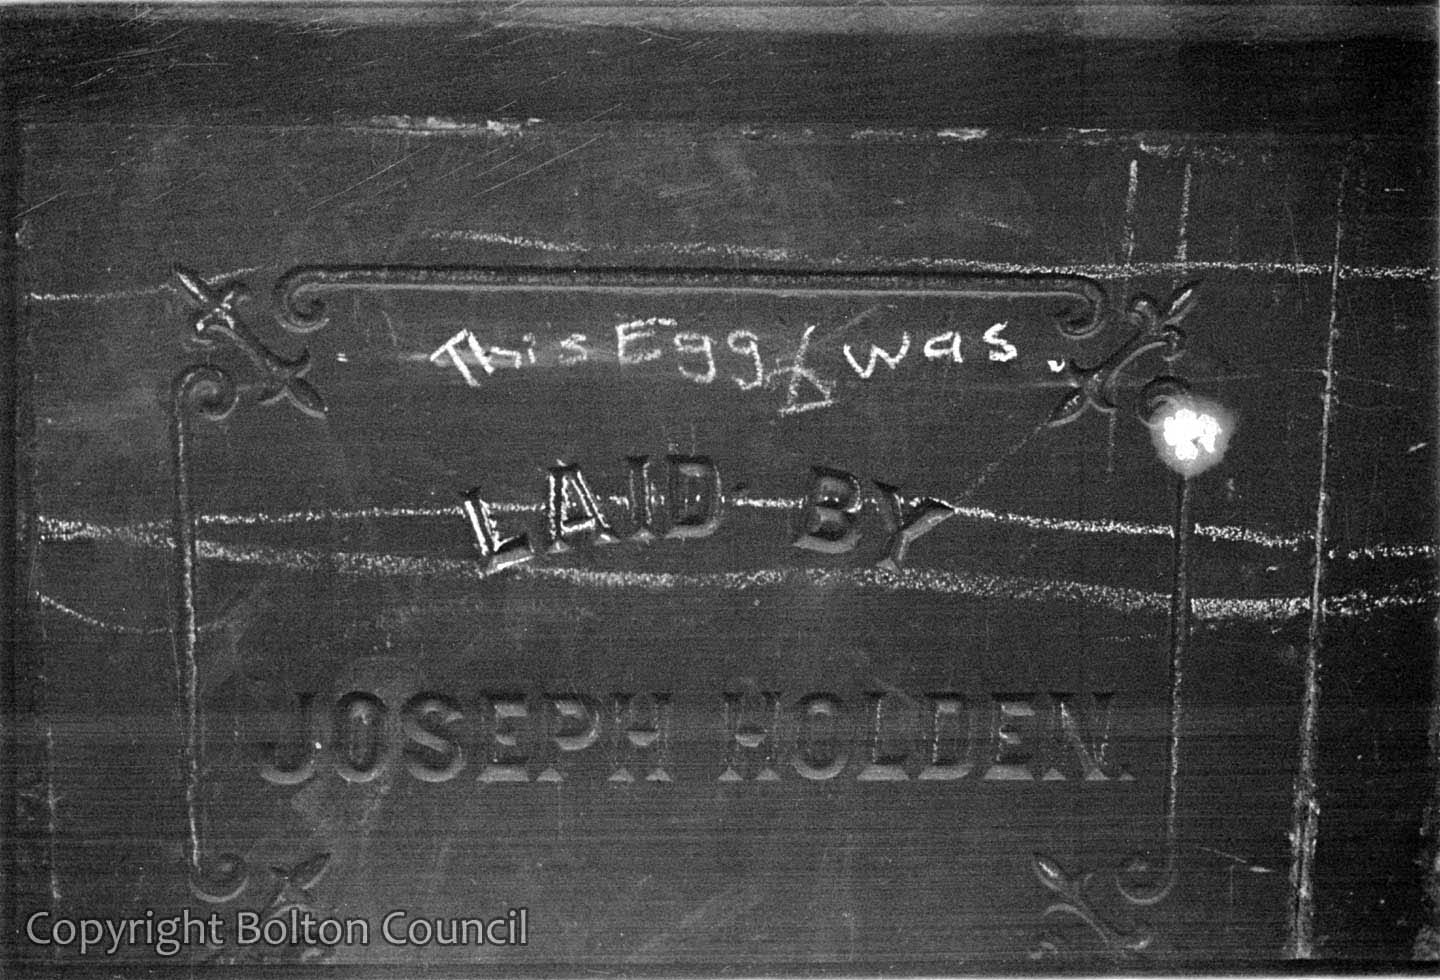 This egg was laid by Joseph Holden